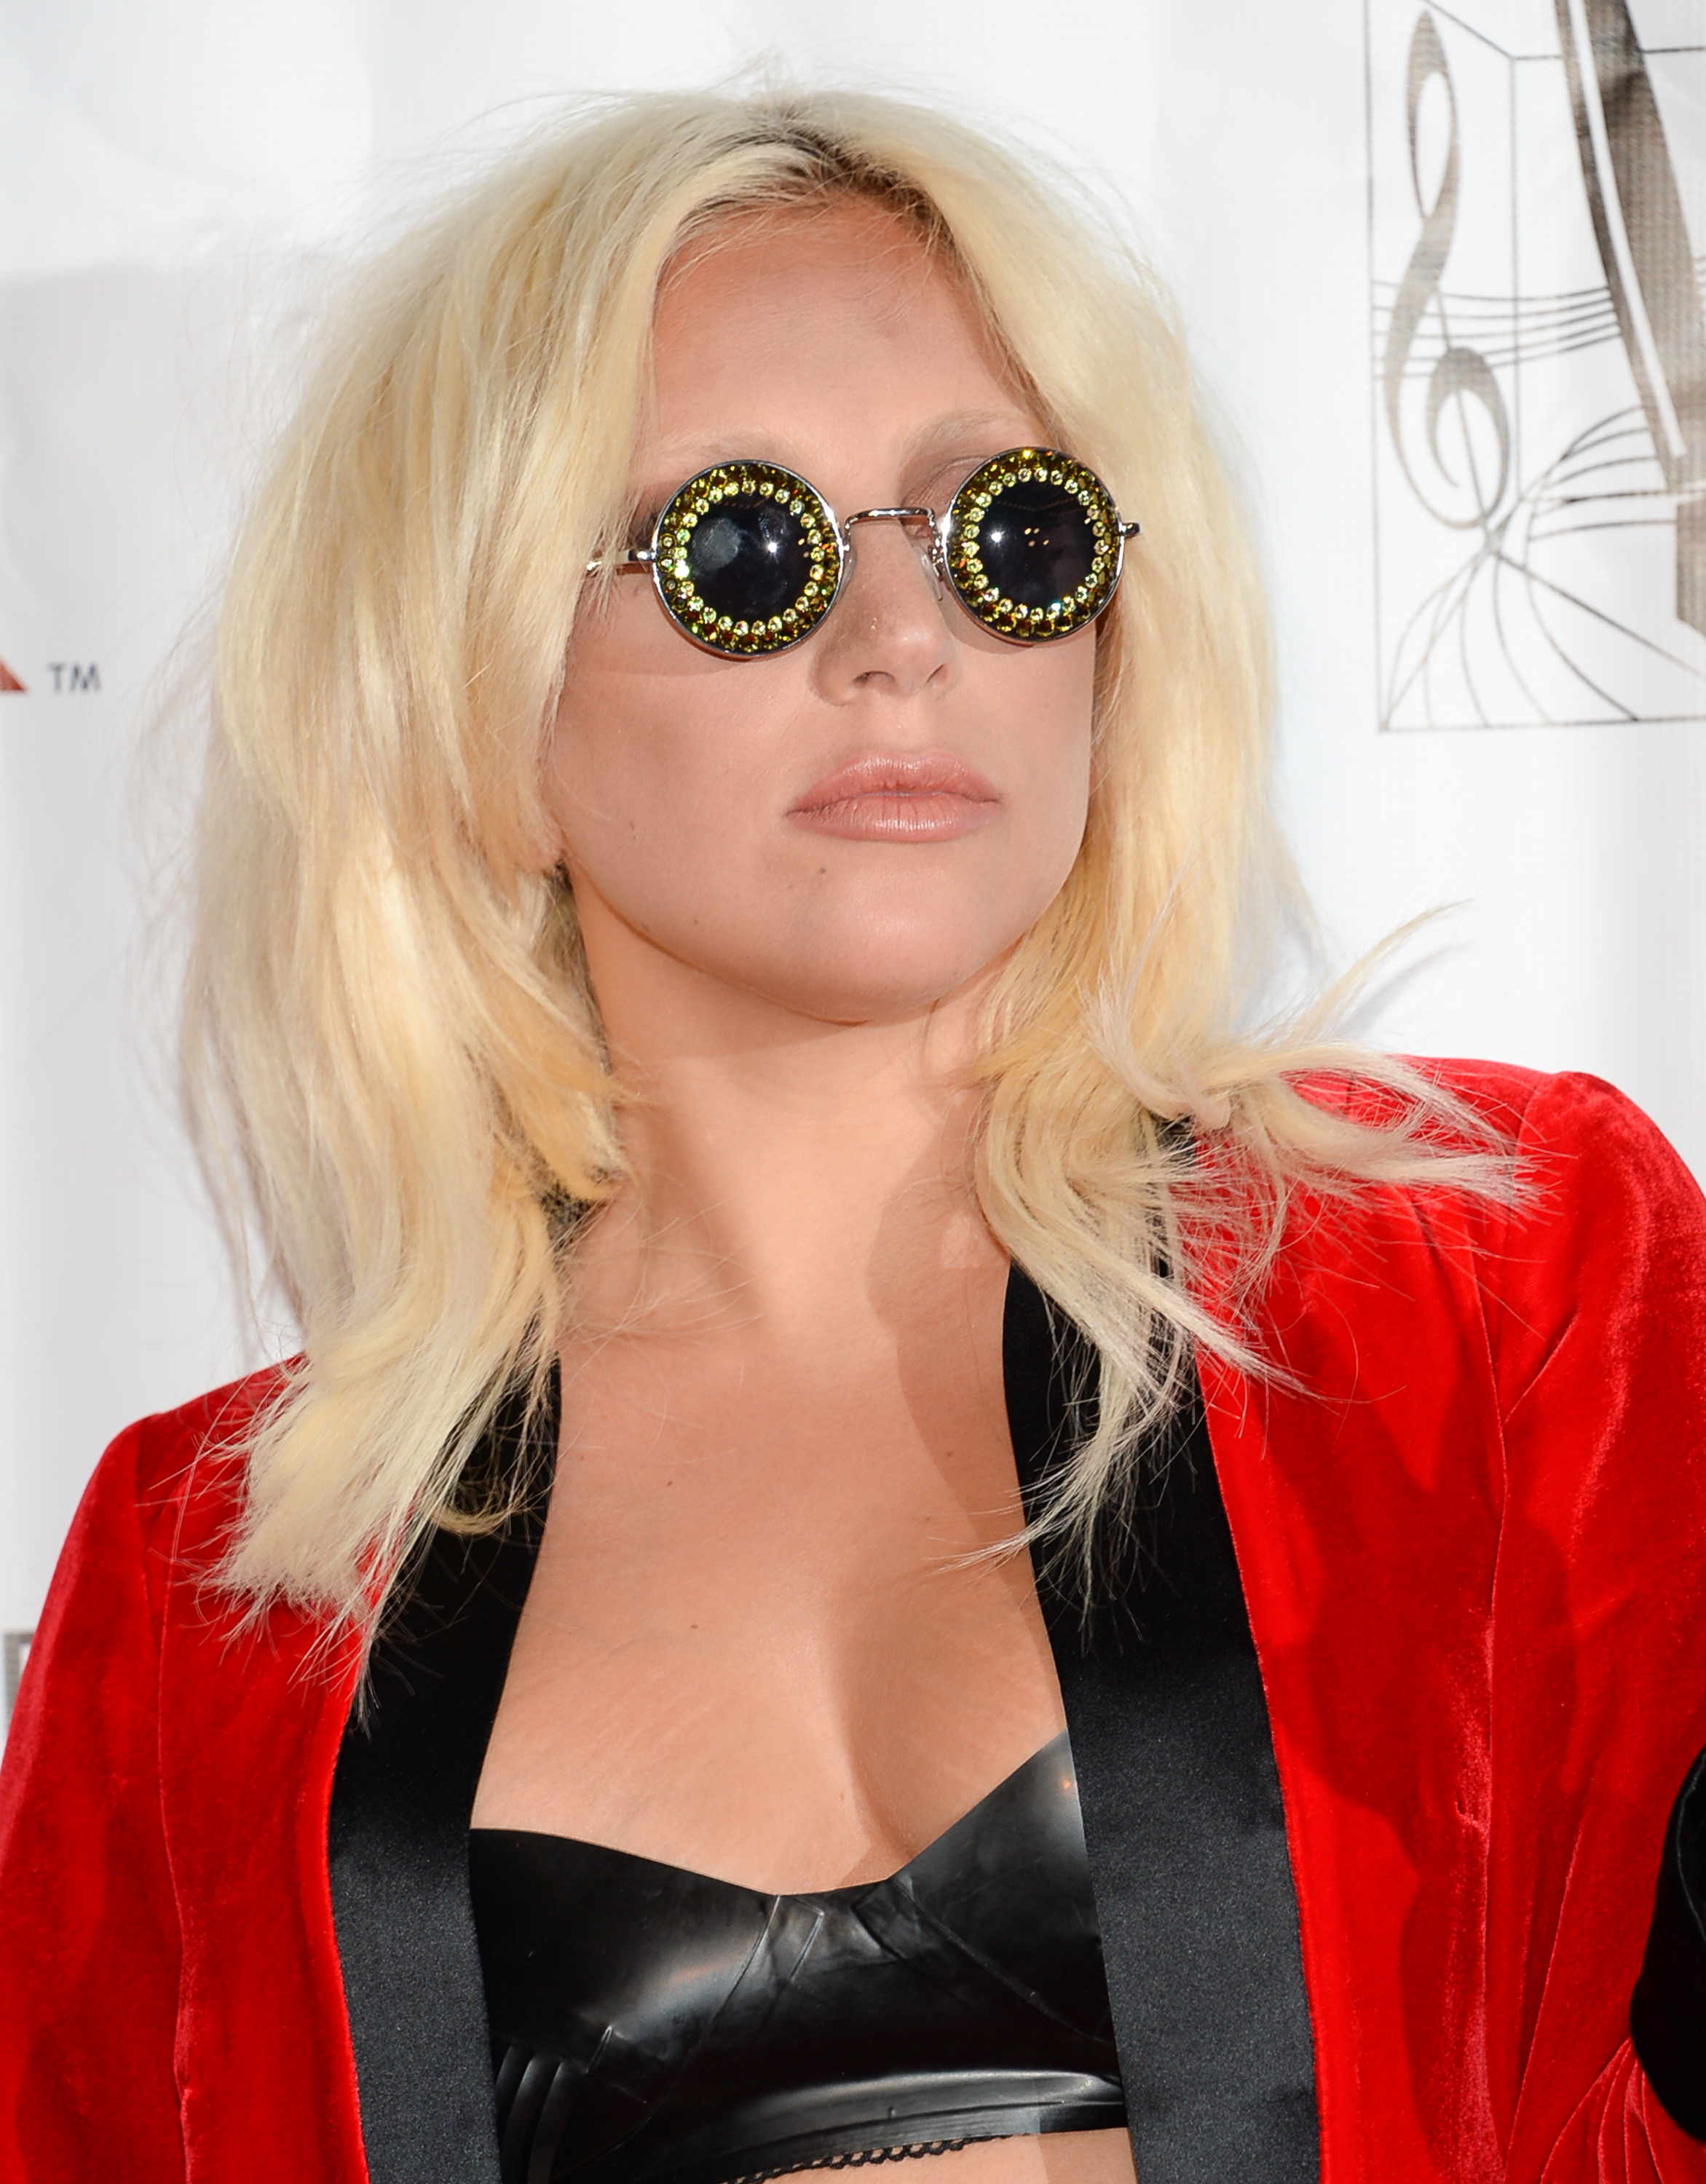 Lady Gaga attends the 46th Annual Songwriters Hall Of Fame Induction and Awards Gala at the Marriott Marquis on June 18, 2015, in New York.